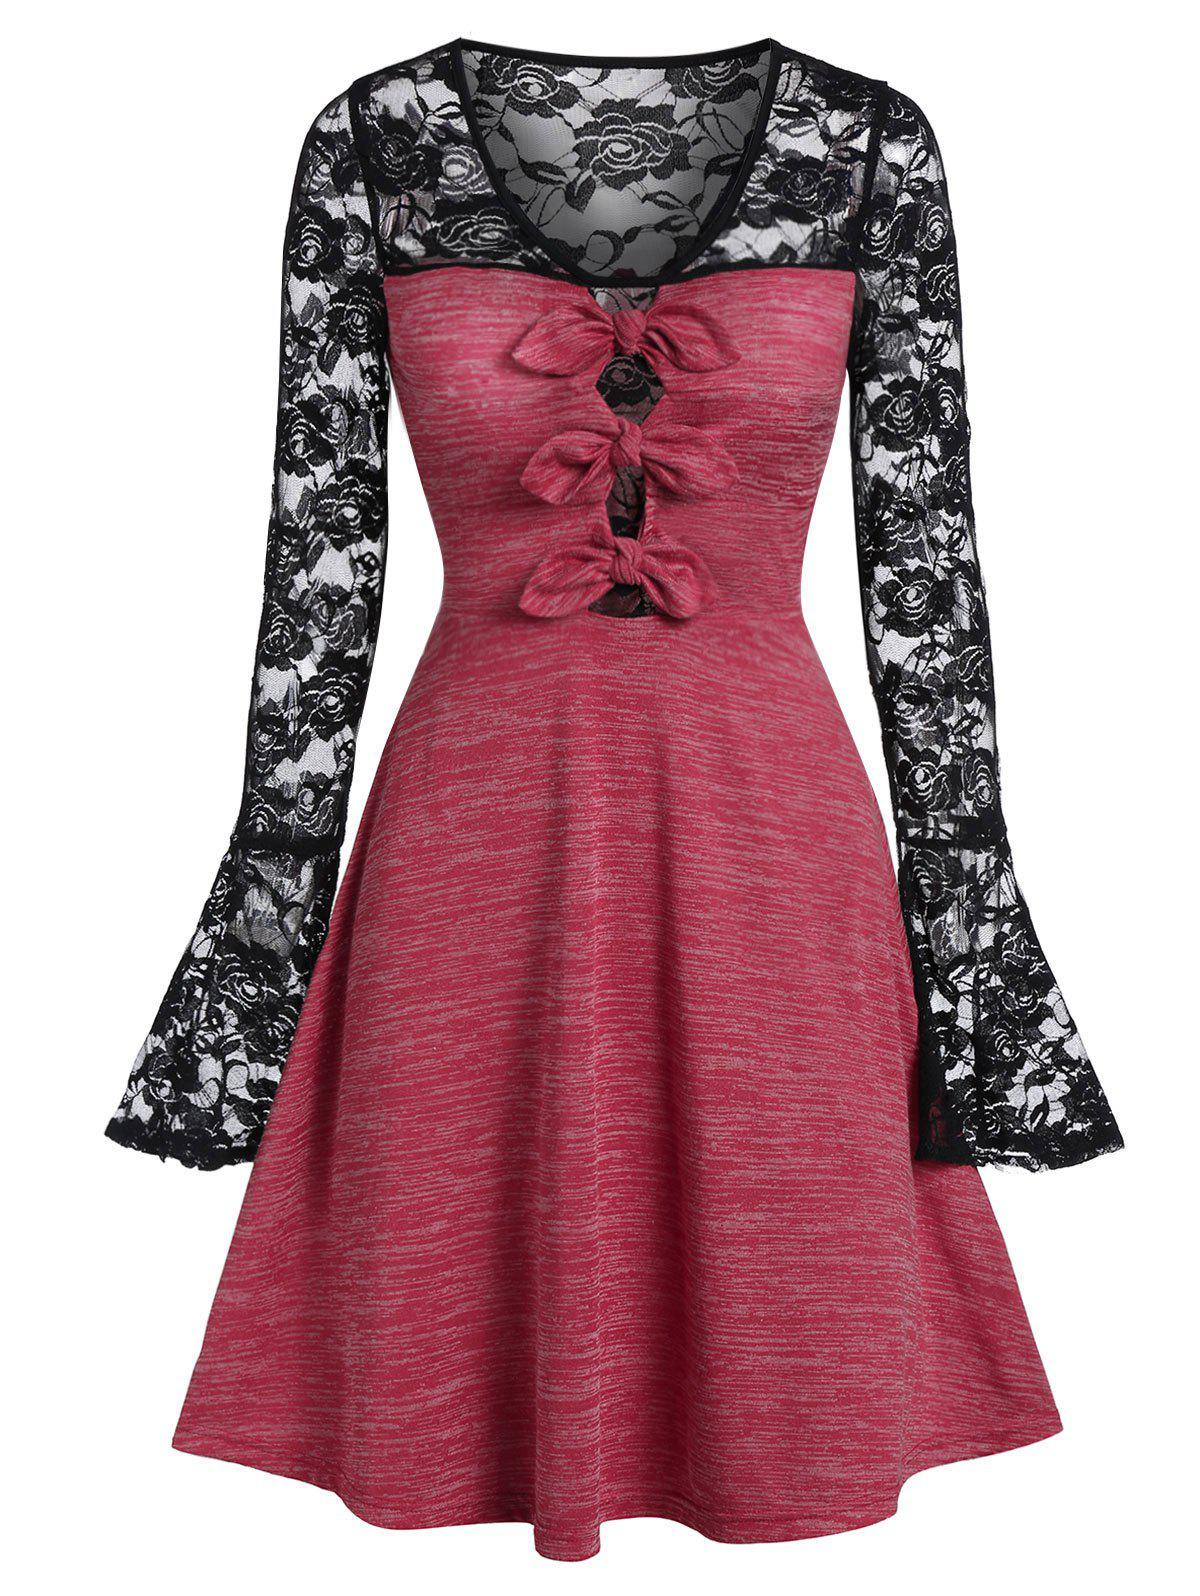 Shop Lace Insert Bowknot Space Dye Dress